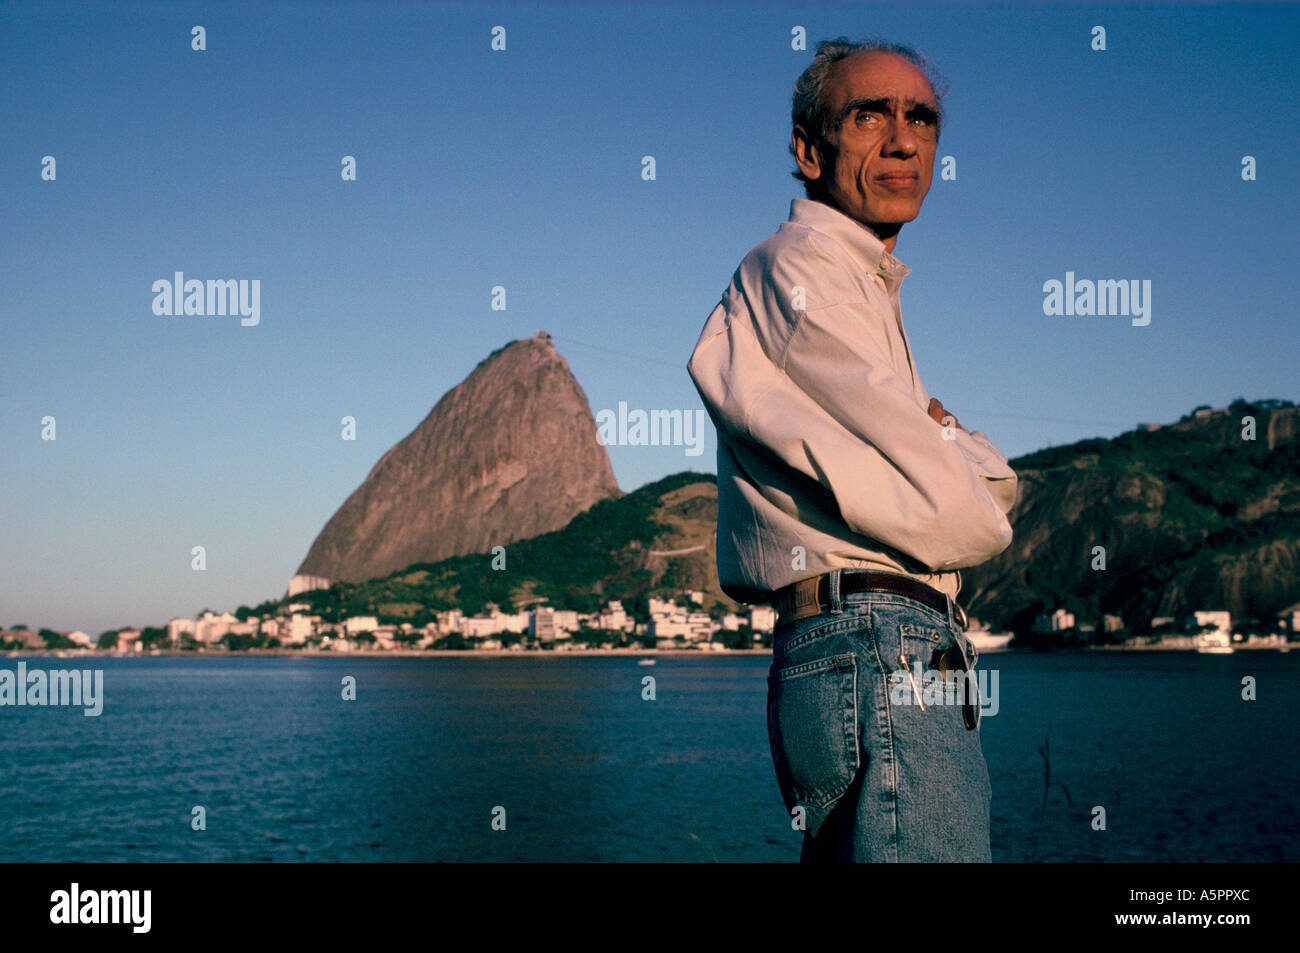 Herbert De Stock Photos & Herbert De Stock Images - Alamy